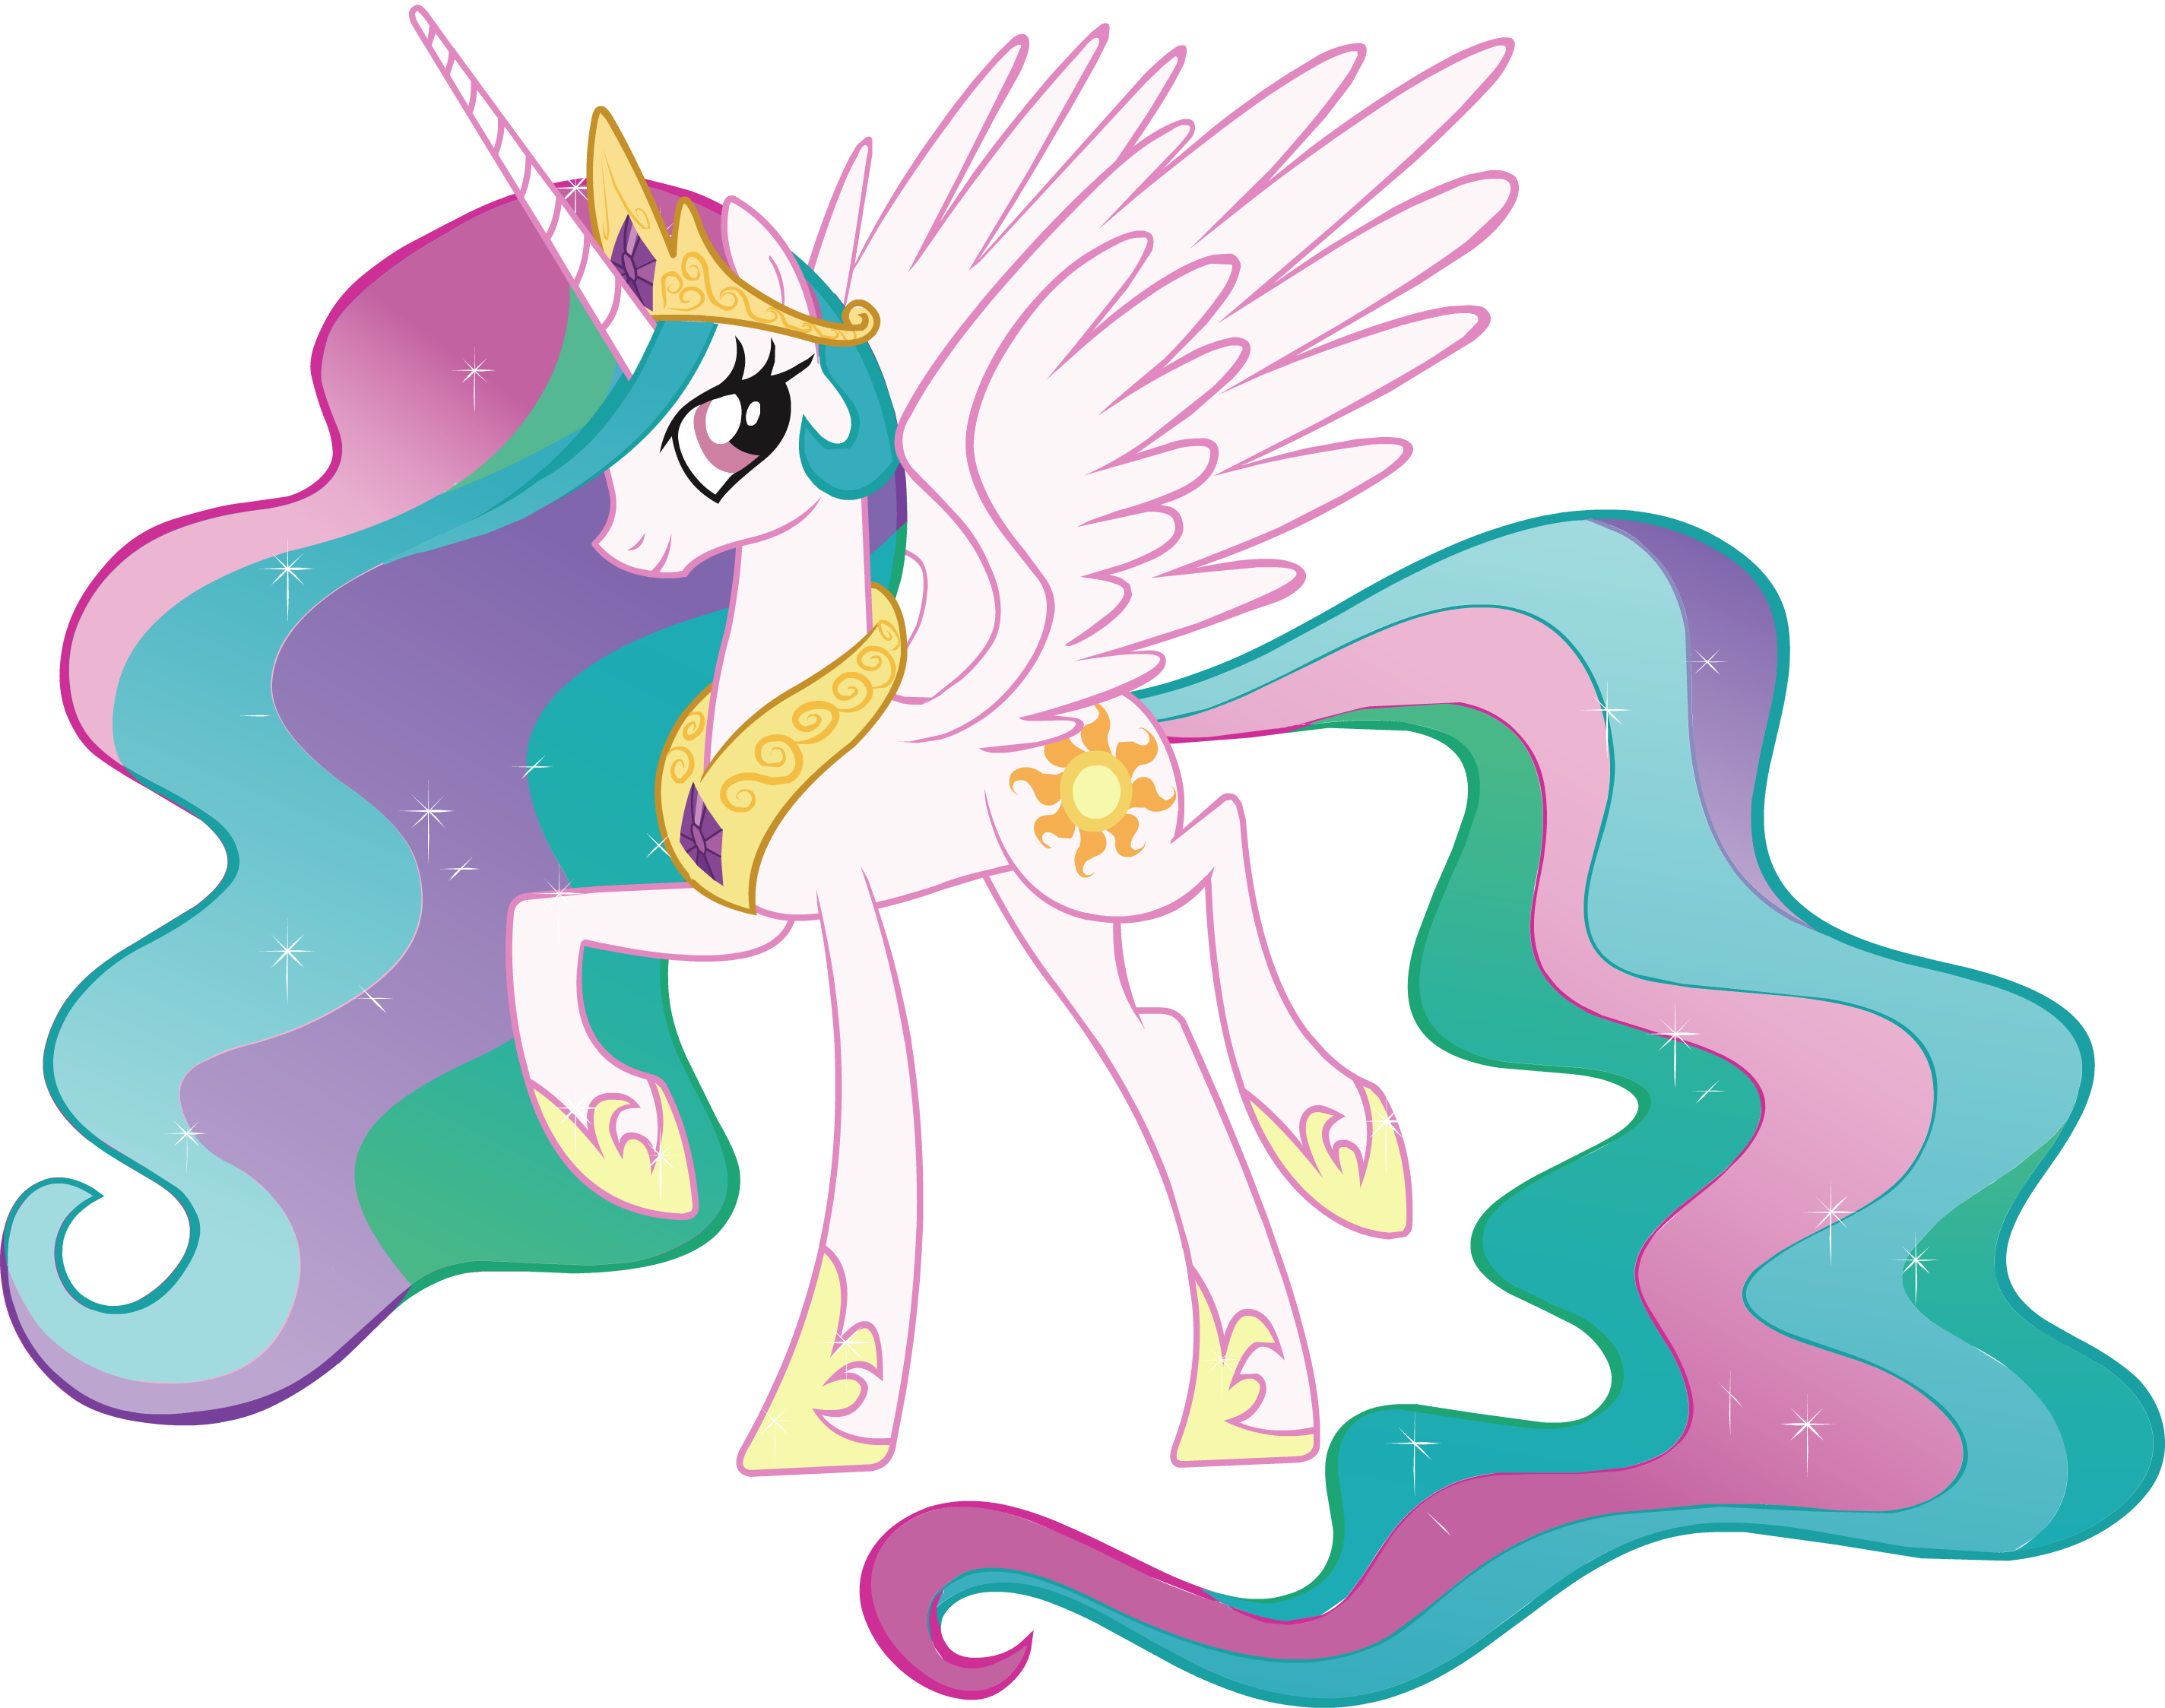 Princess celestia the my little pony gameloft wiki - Princesse poney ...